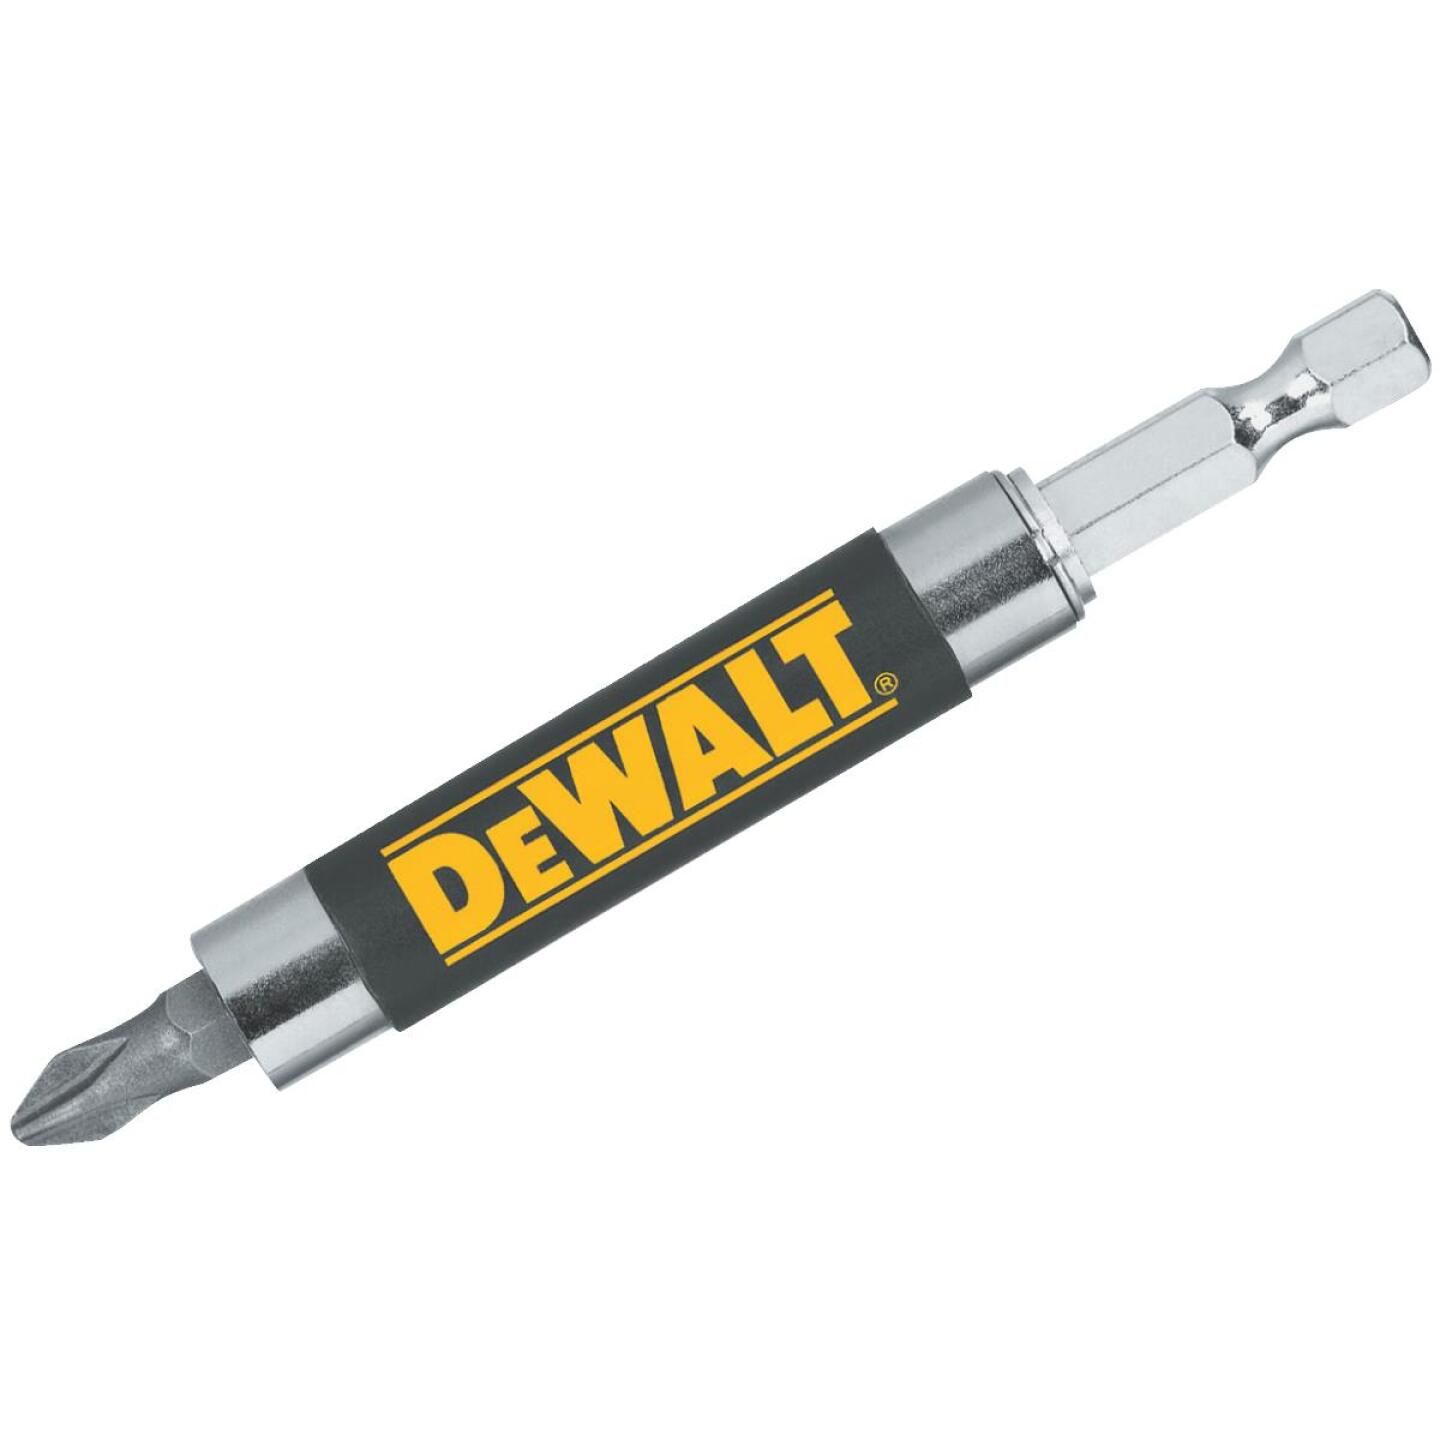 DeWalt 1/4 In. Hex x 3 In. Magnetic Bit Holder Image 1